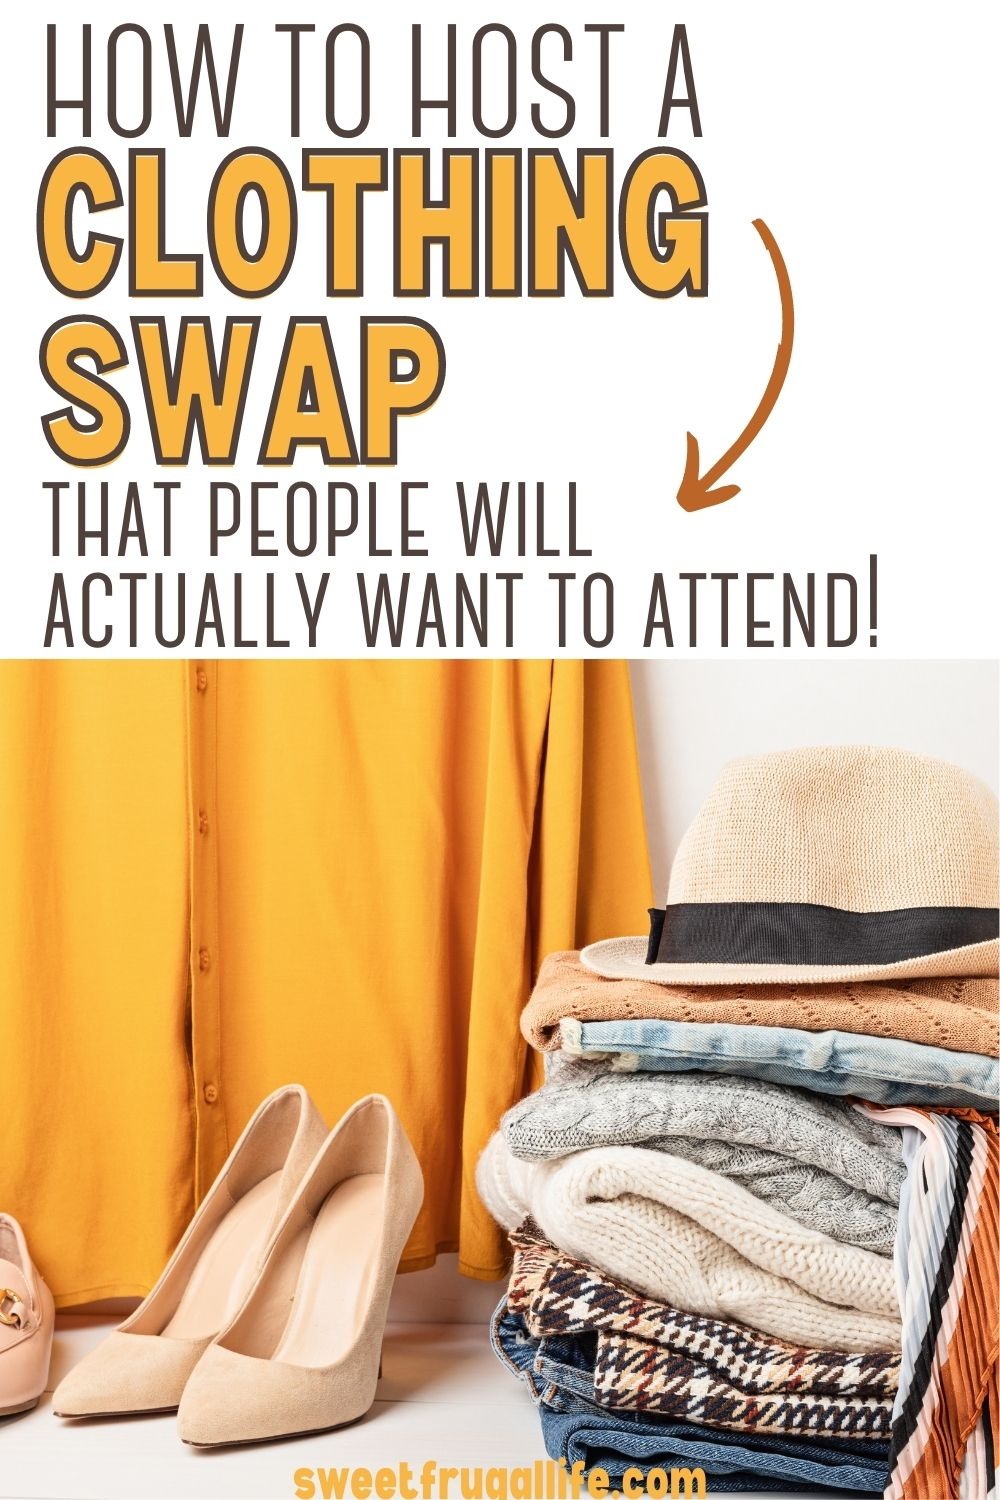 hosting a clothing swap - easy way to save money on clothing